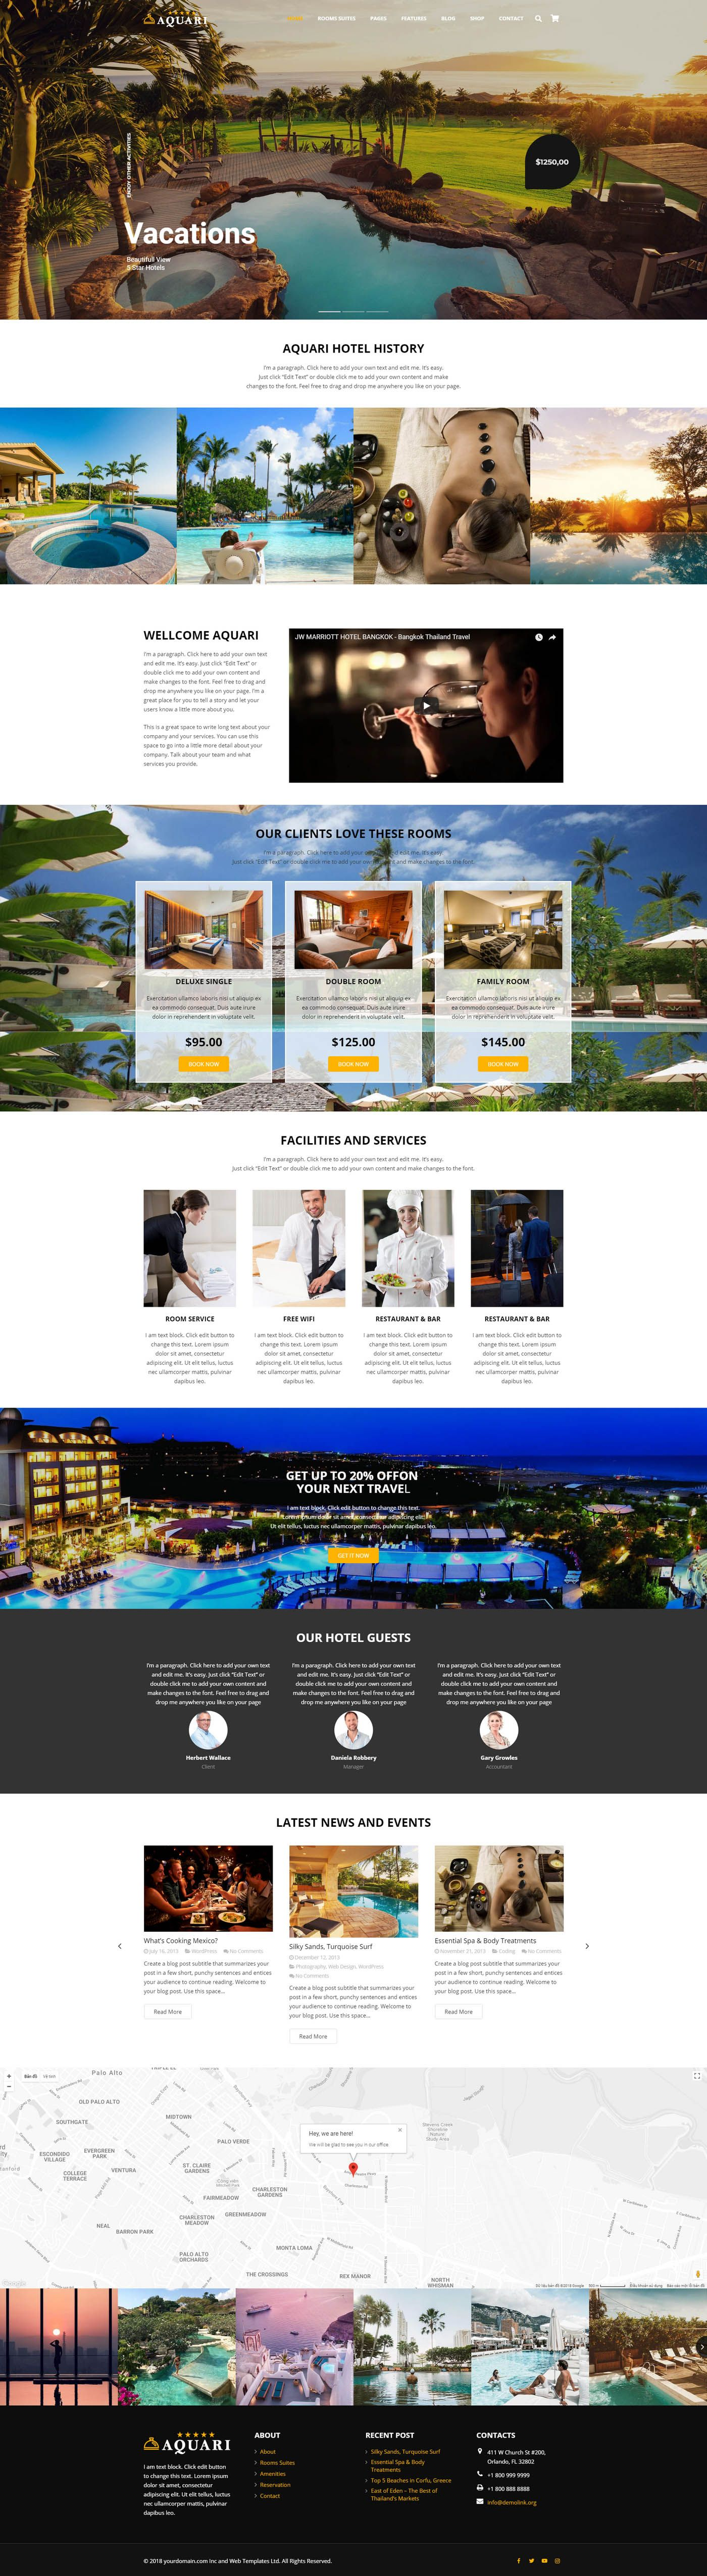 Aquari - Hotel Wordpress Theme Screenshot 5